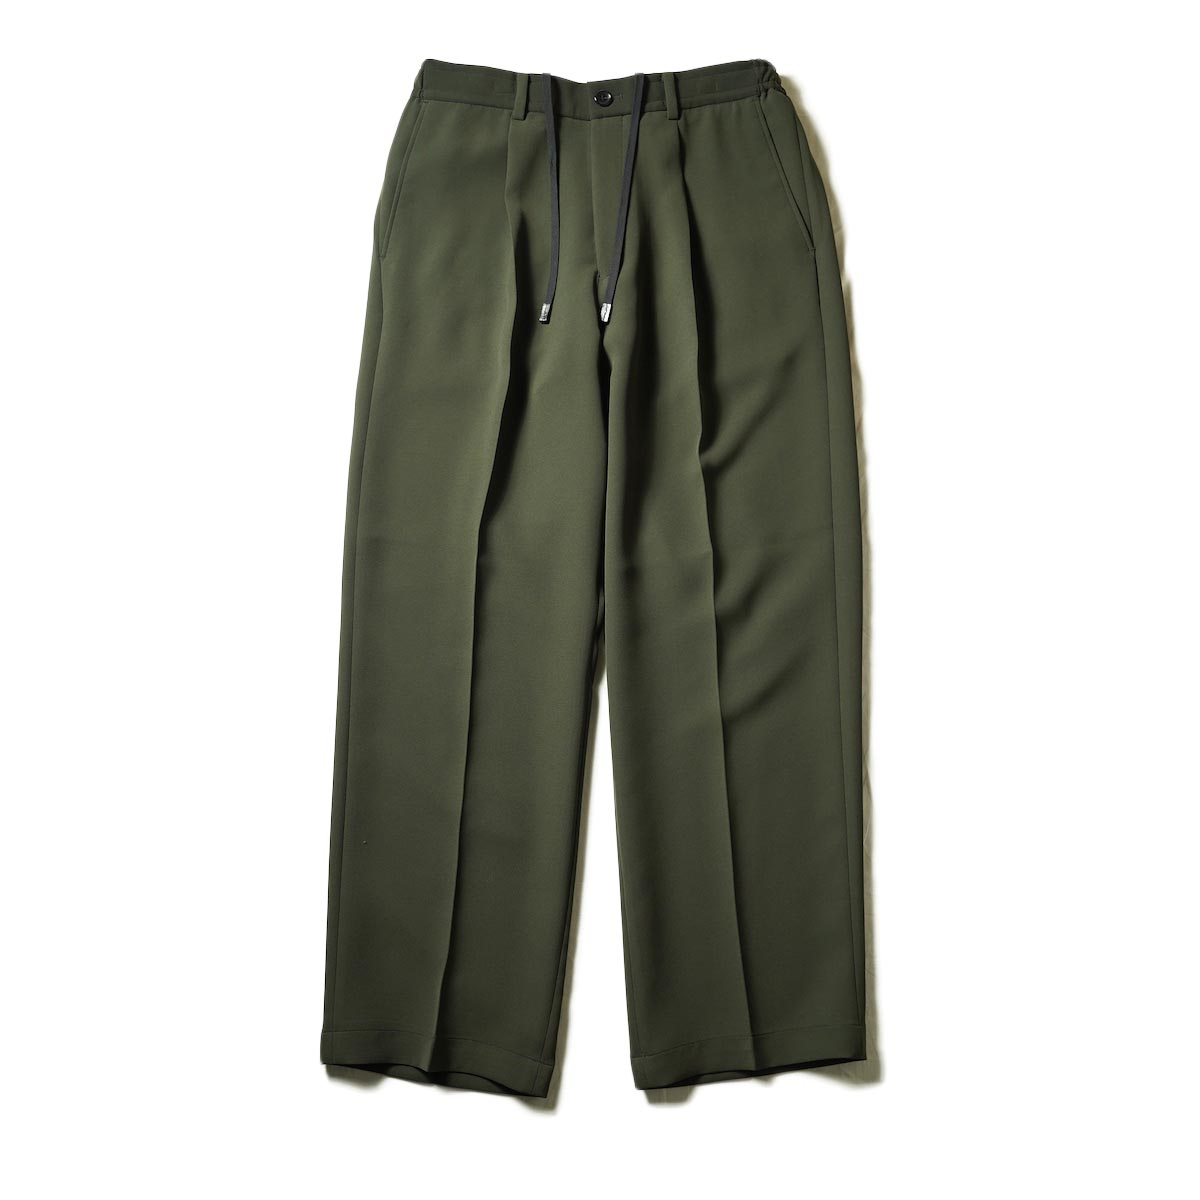 N.HOOLYWOOD / 2212-PT06-098 Wide Tapered Easy Slacks (Charcoal)正面